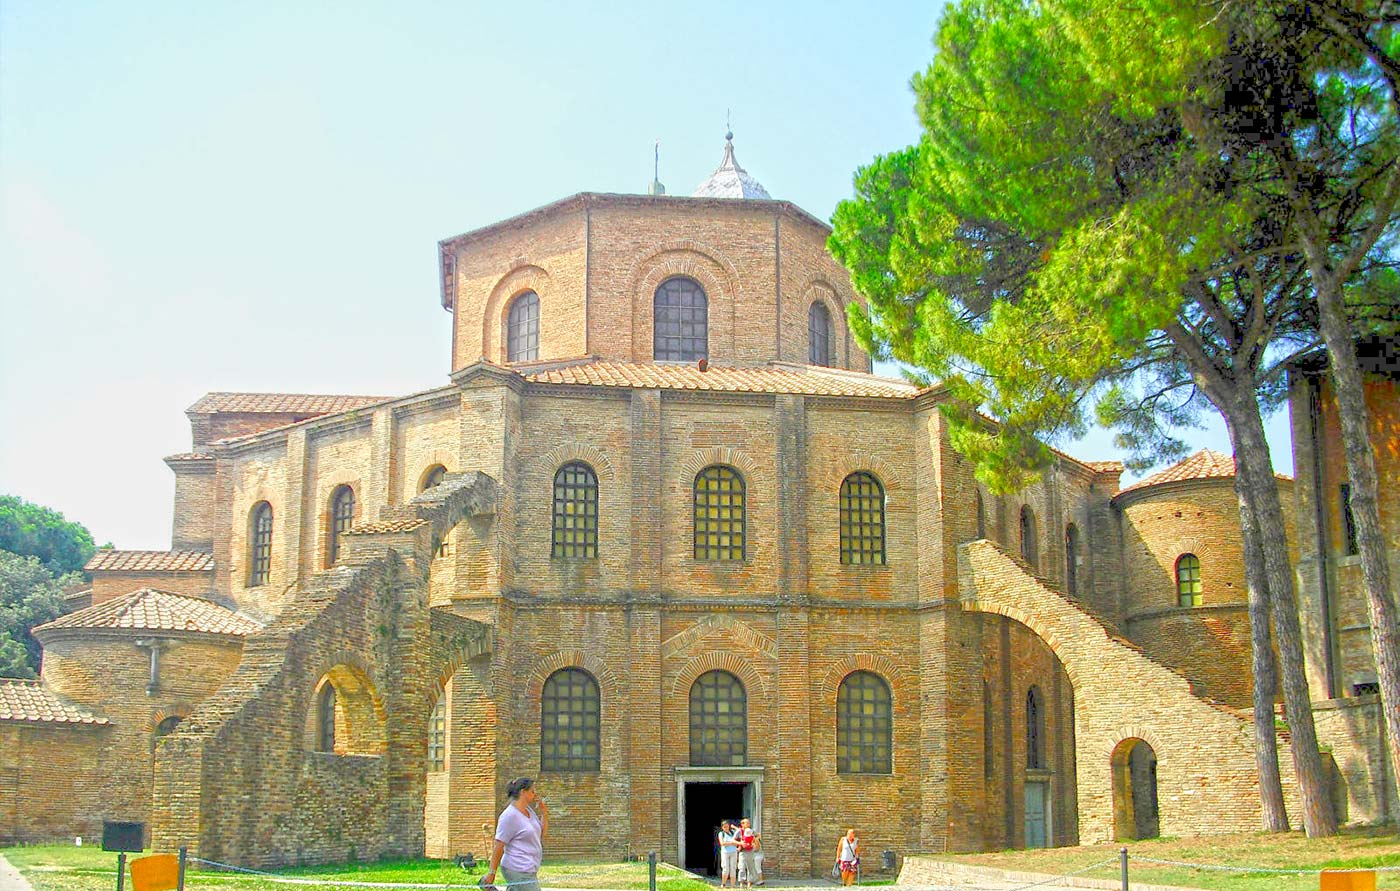 What to do and see in Ravenna: why is this city so famous for its mosaics?